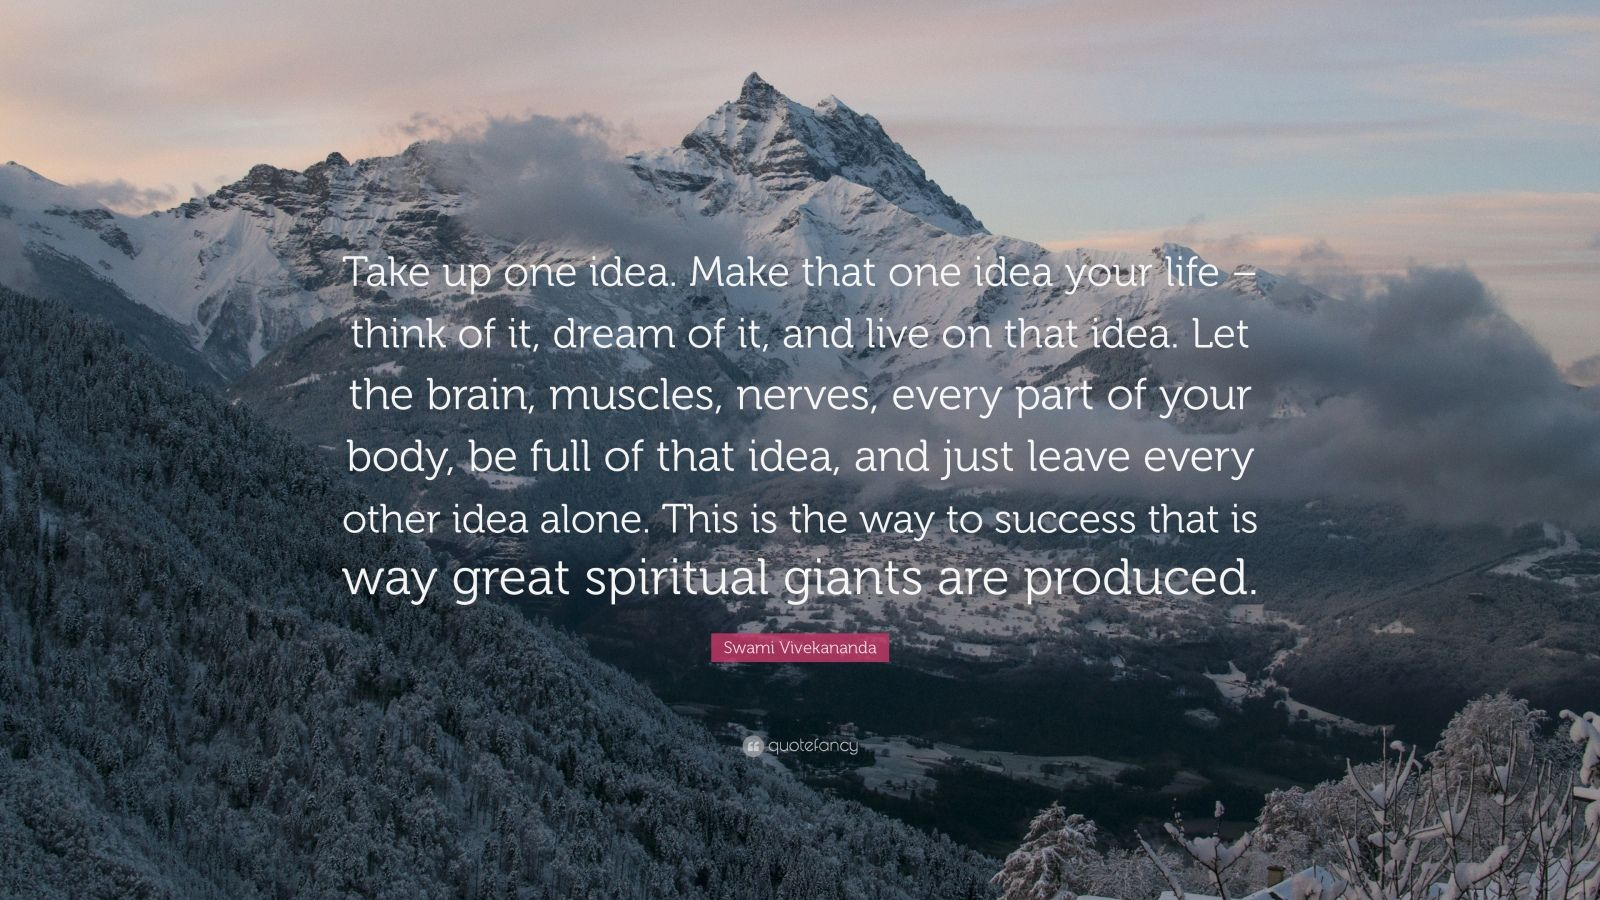 """Swami Vivekananda Quote: """"Take up one idea. Make that one idea your life – think of it, dream of it, and live on that idea. Let the brain, muscles, nerves, every part of your body, be full of that idea, and just leave every other idea alone. This is the way to success that is way great spiritual giants are produced."""""""